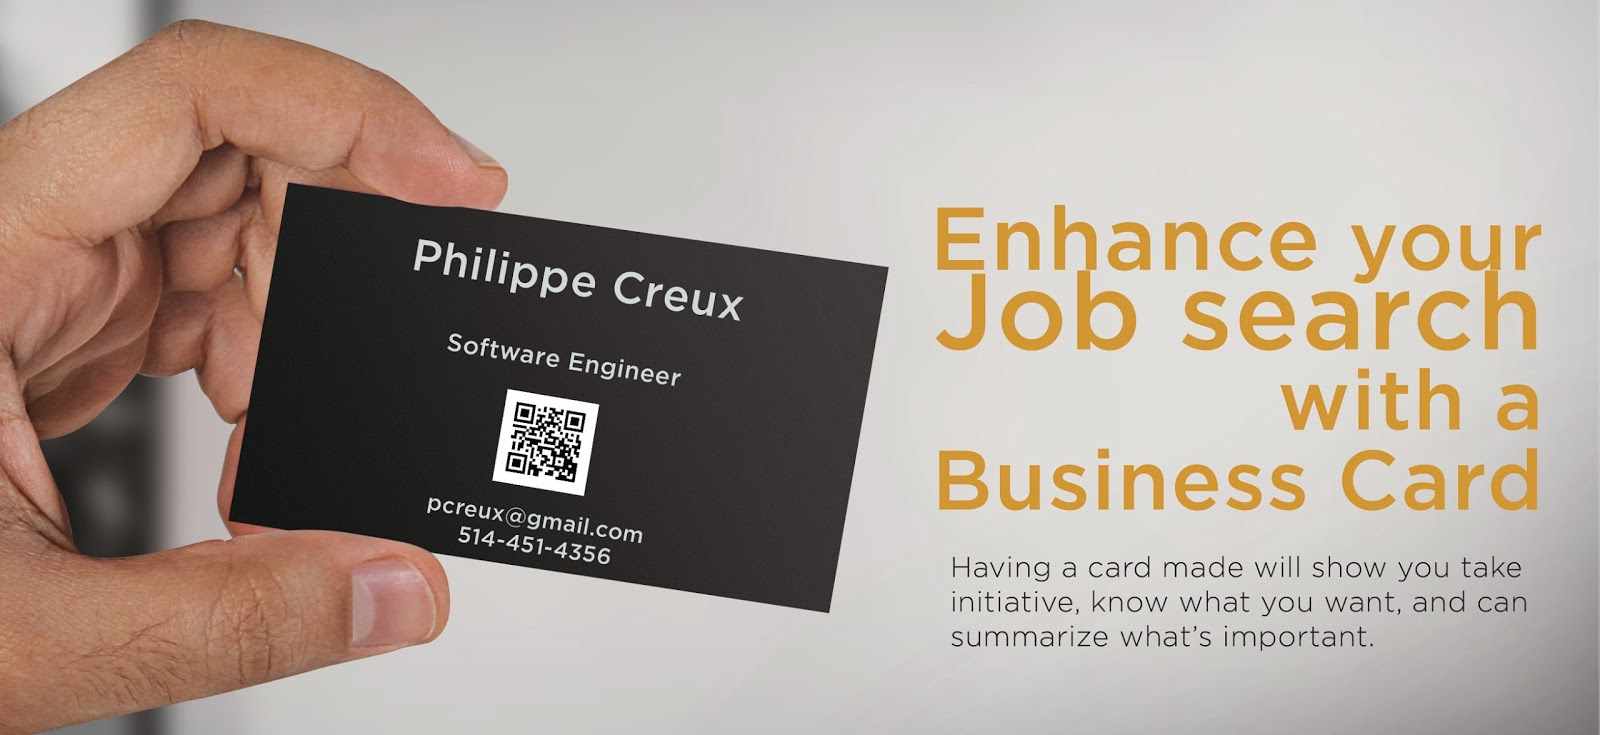 Sample Business Cards For Unemployed